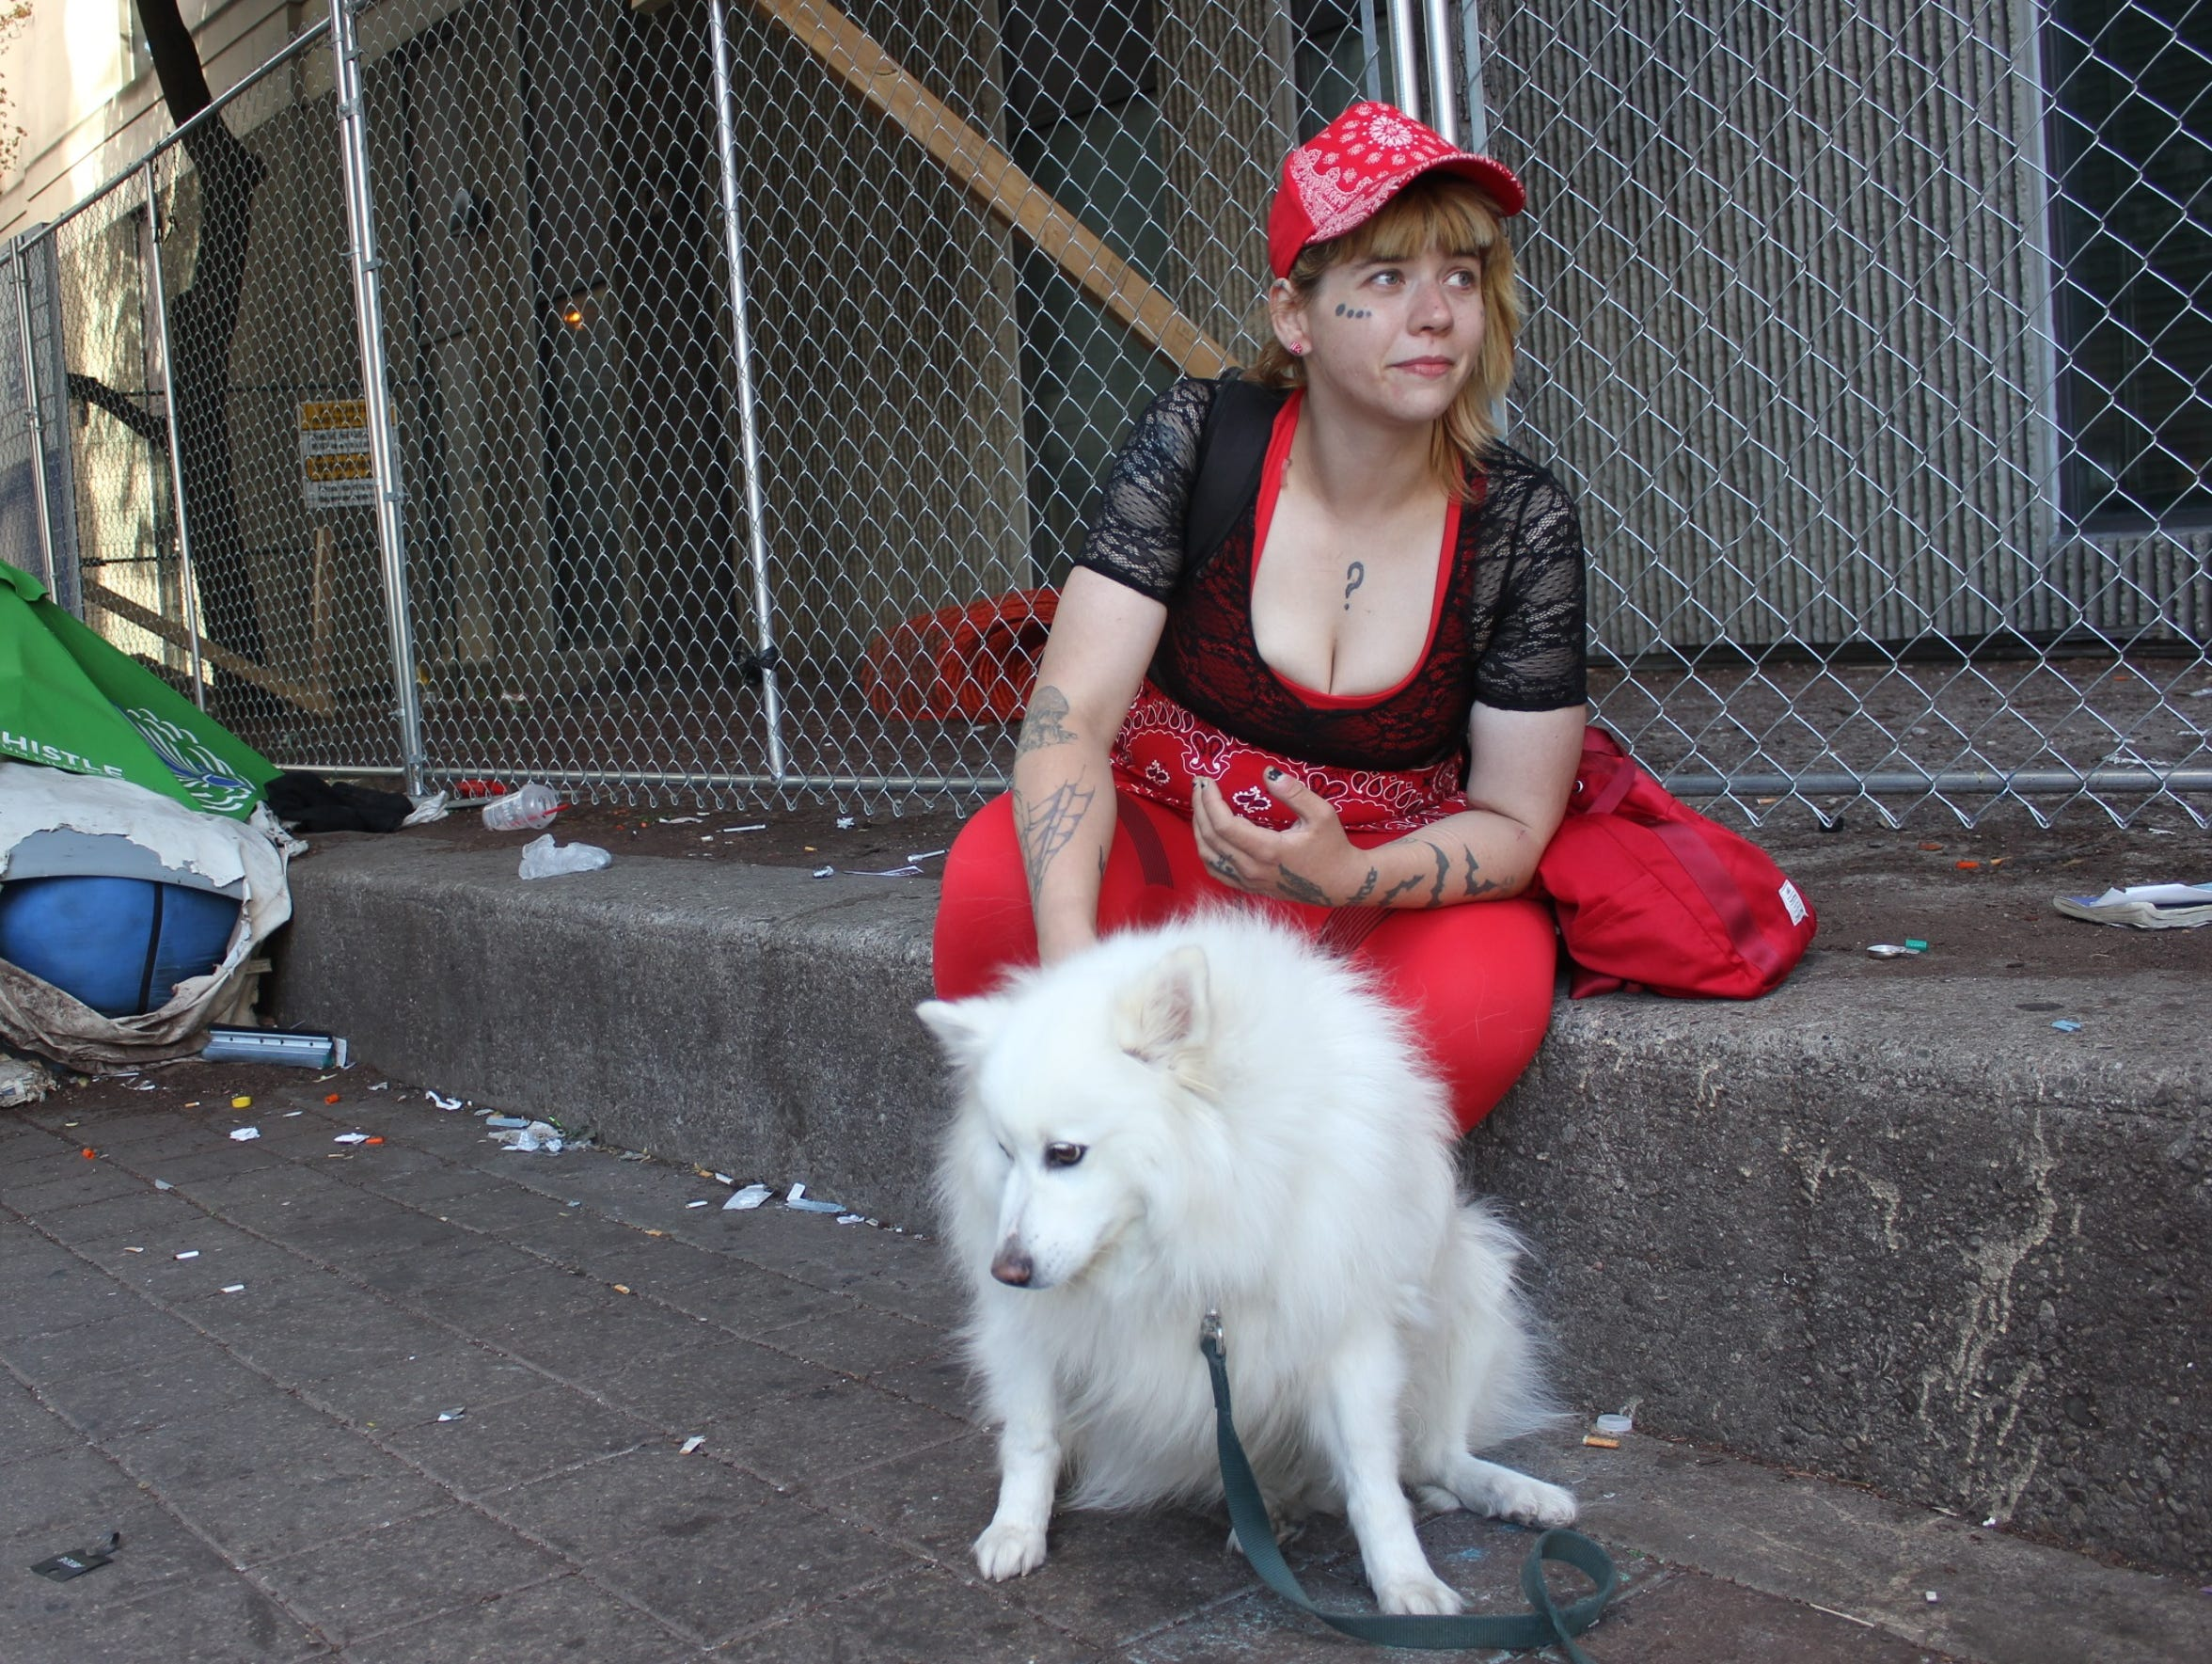 Brooke Fuller, 25, pets a friend's dog outside a supervised